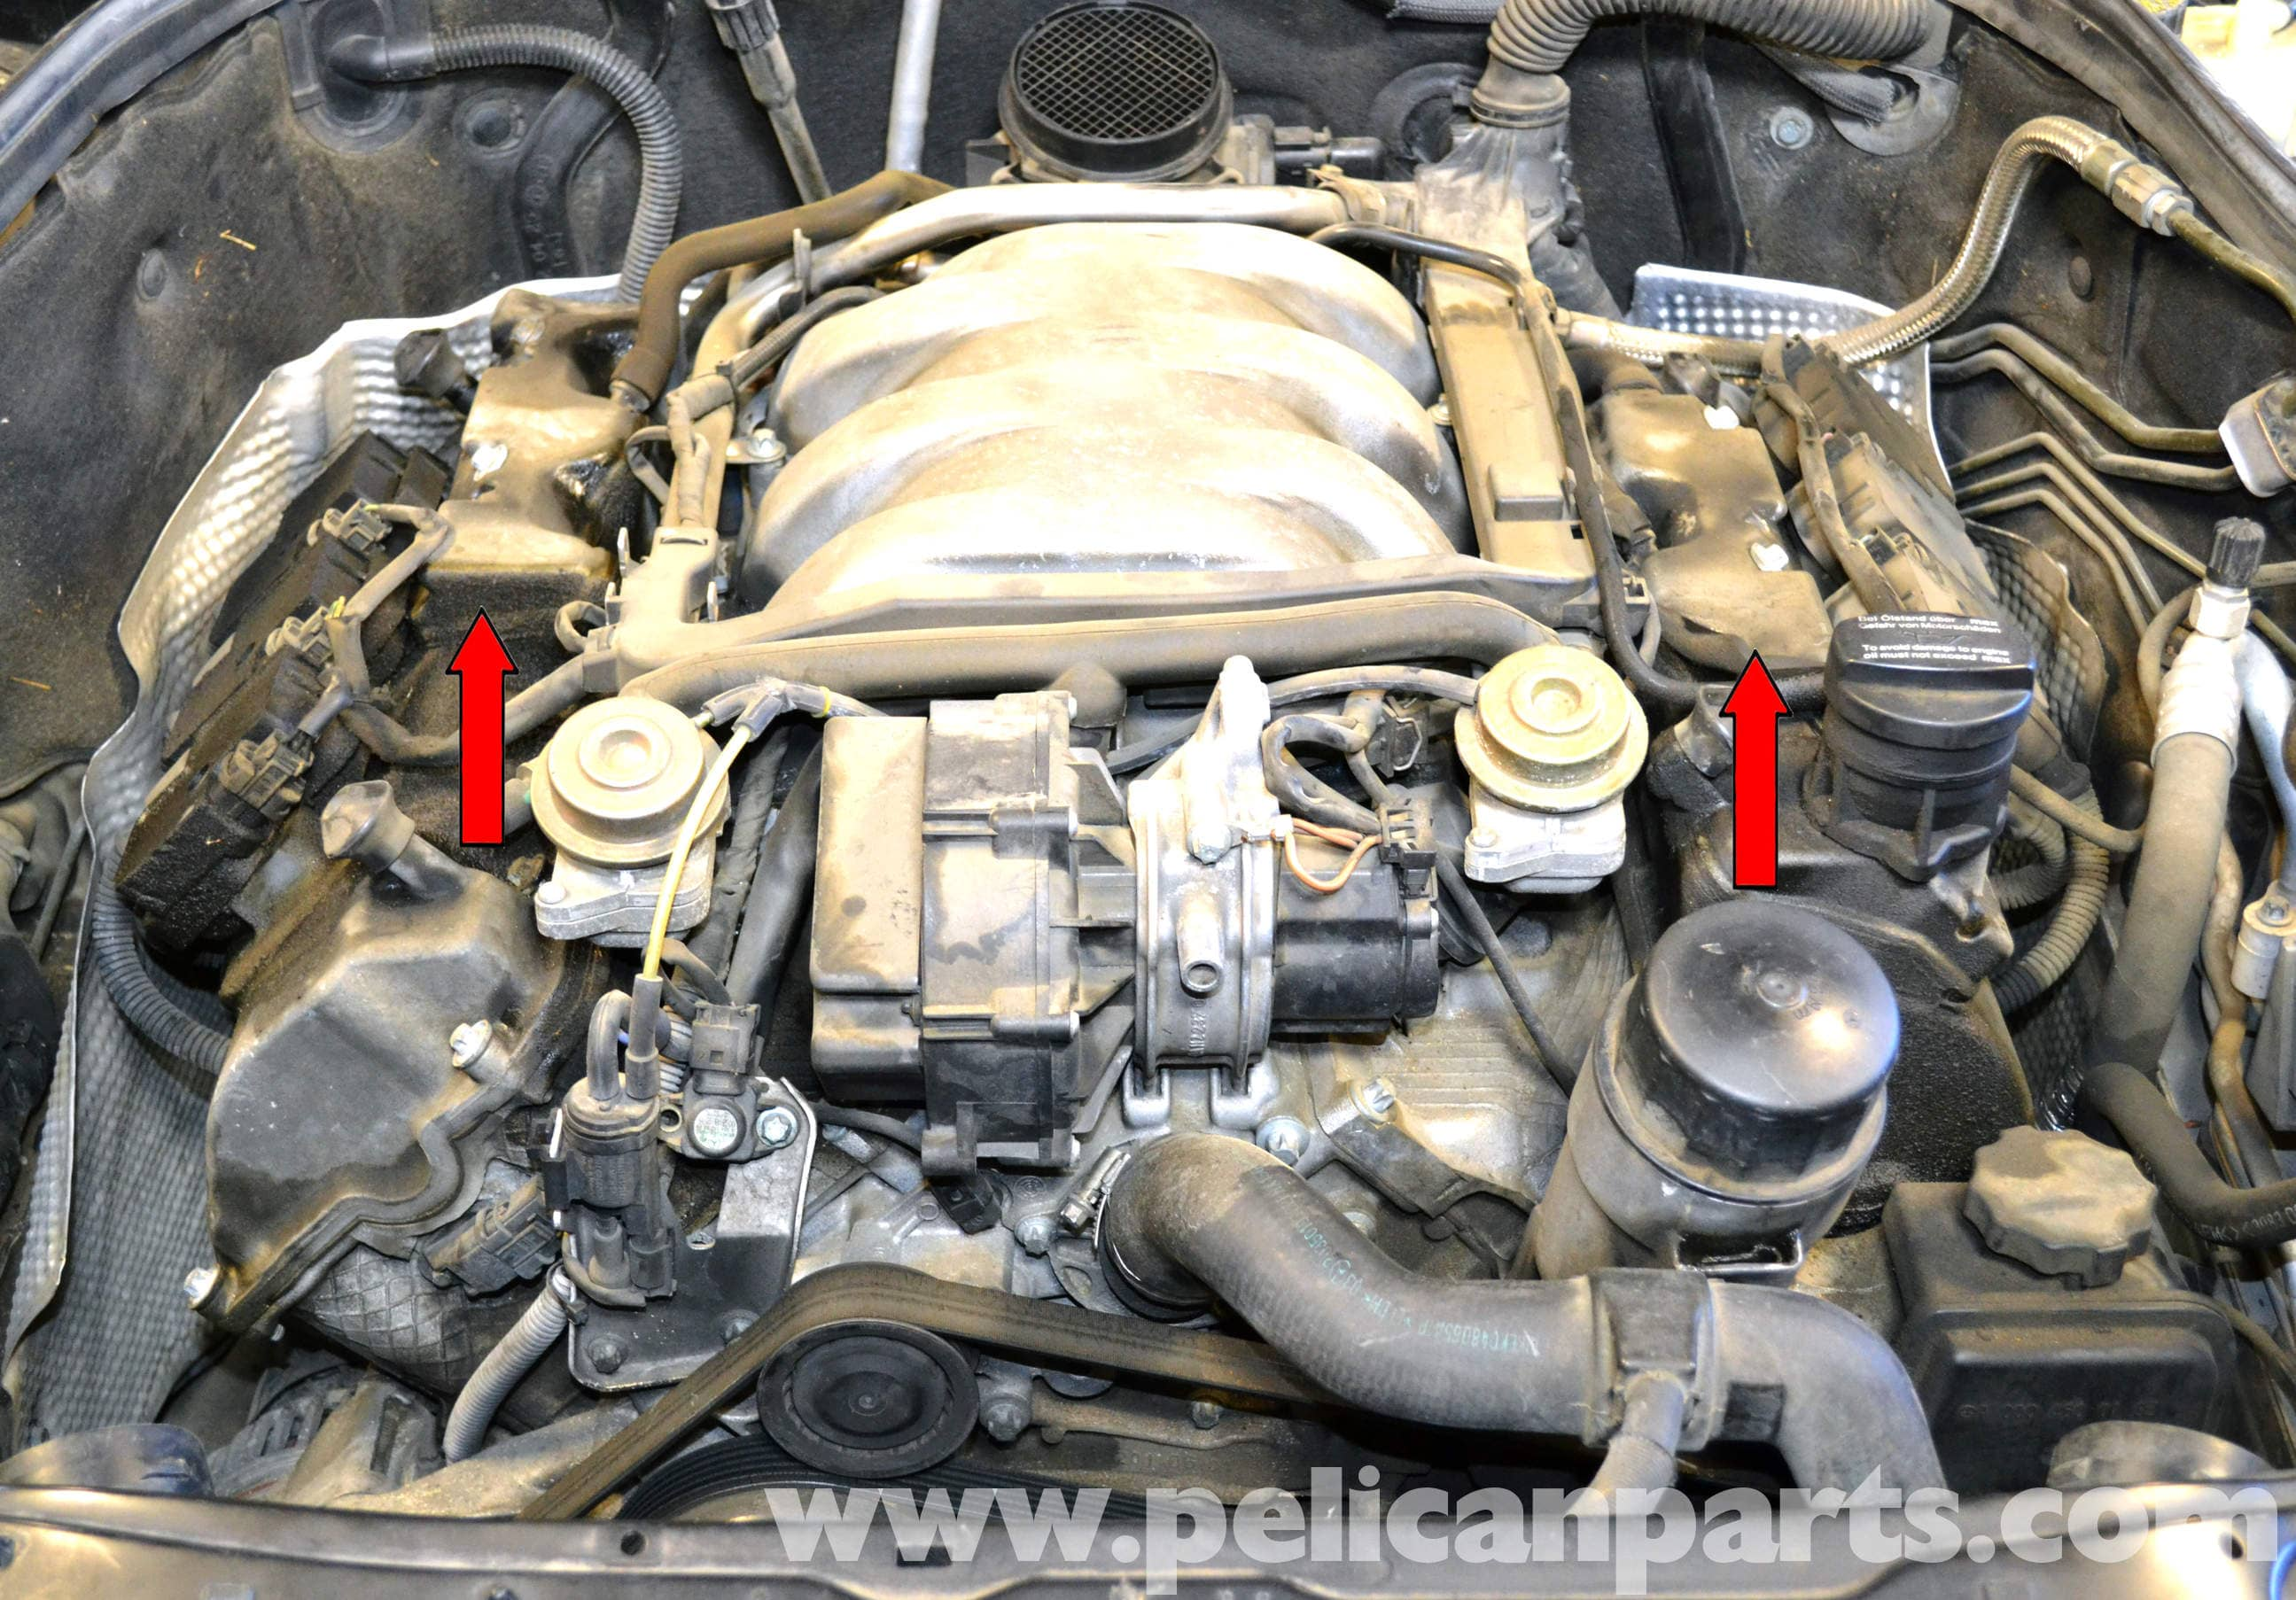 wrg 6760] 2004 mercedes benz ml320 diagram 2004 Mercedes-Benz C55 AMG 2004 Mercedes Benz Ml320 Diagram #2